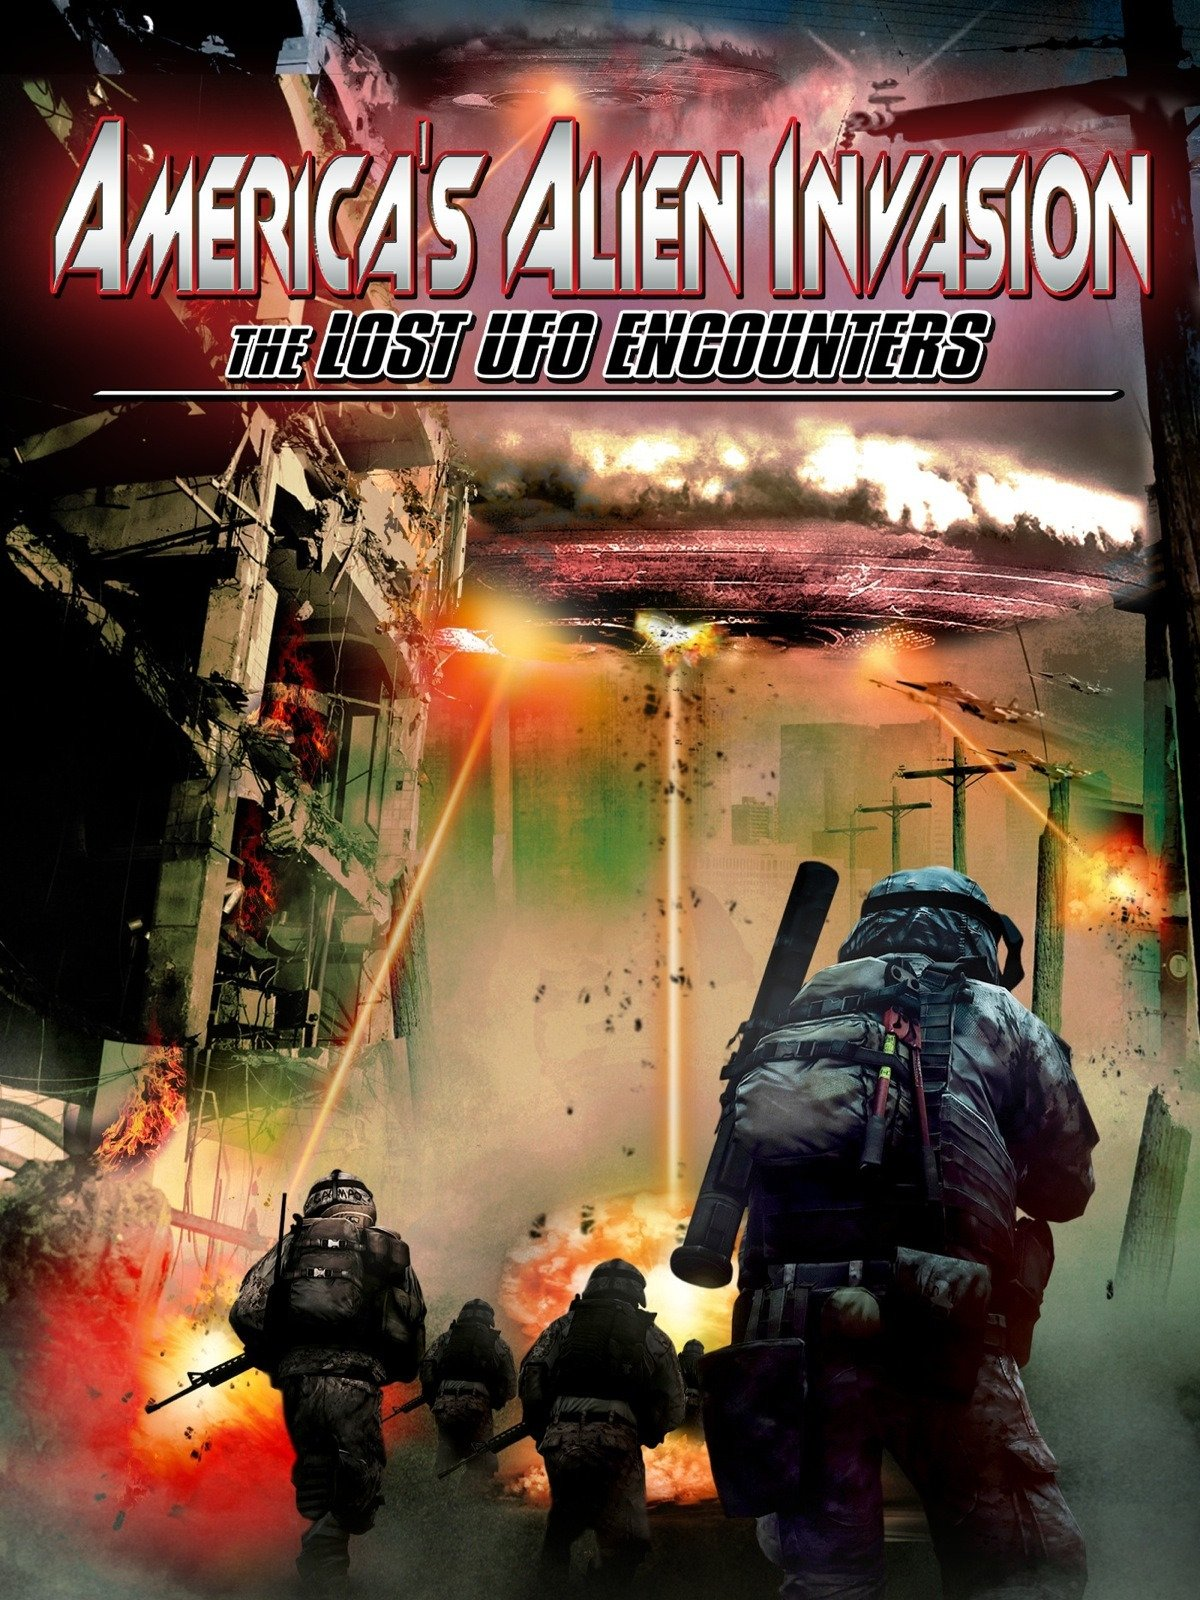 America's Alien Invasion: The Lost UFO Encounters on Amazon Prime Video UK